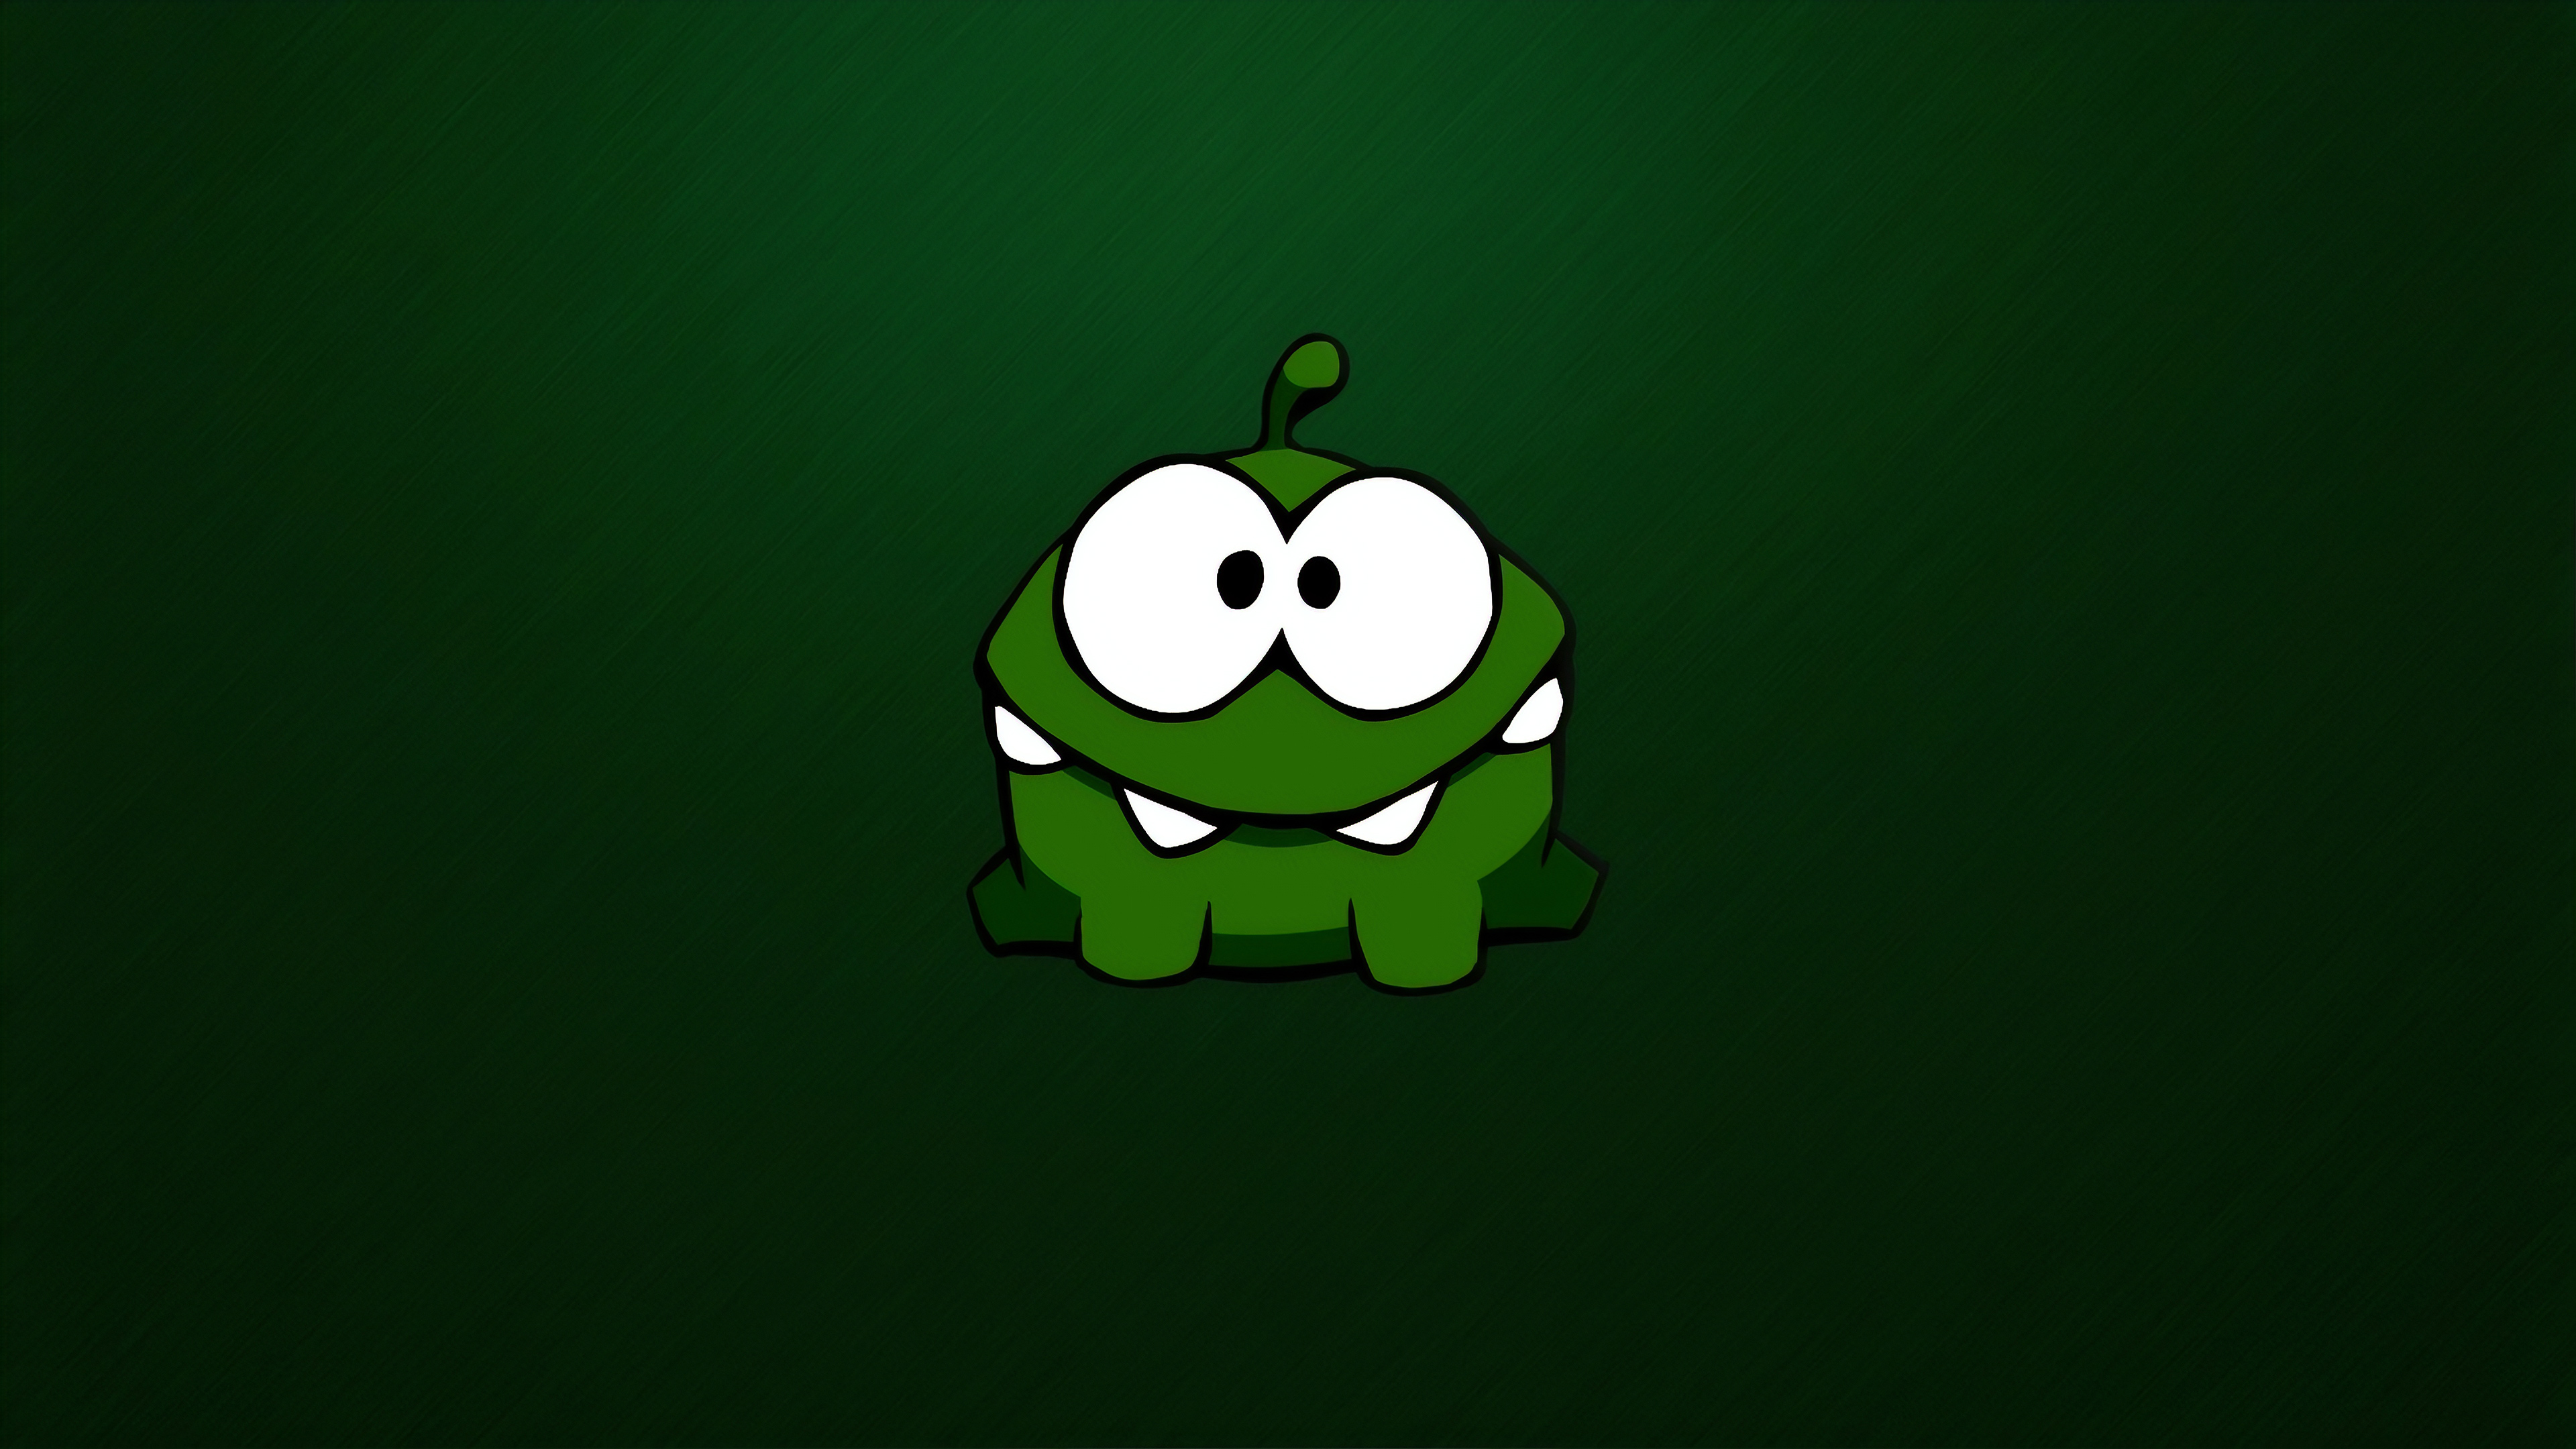 cut the rope frog 1568057008 - Cut The Rope Frog - hd-wallpapers, games wallpapers, cut the rope wallpapers, 4k-wallpapers